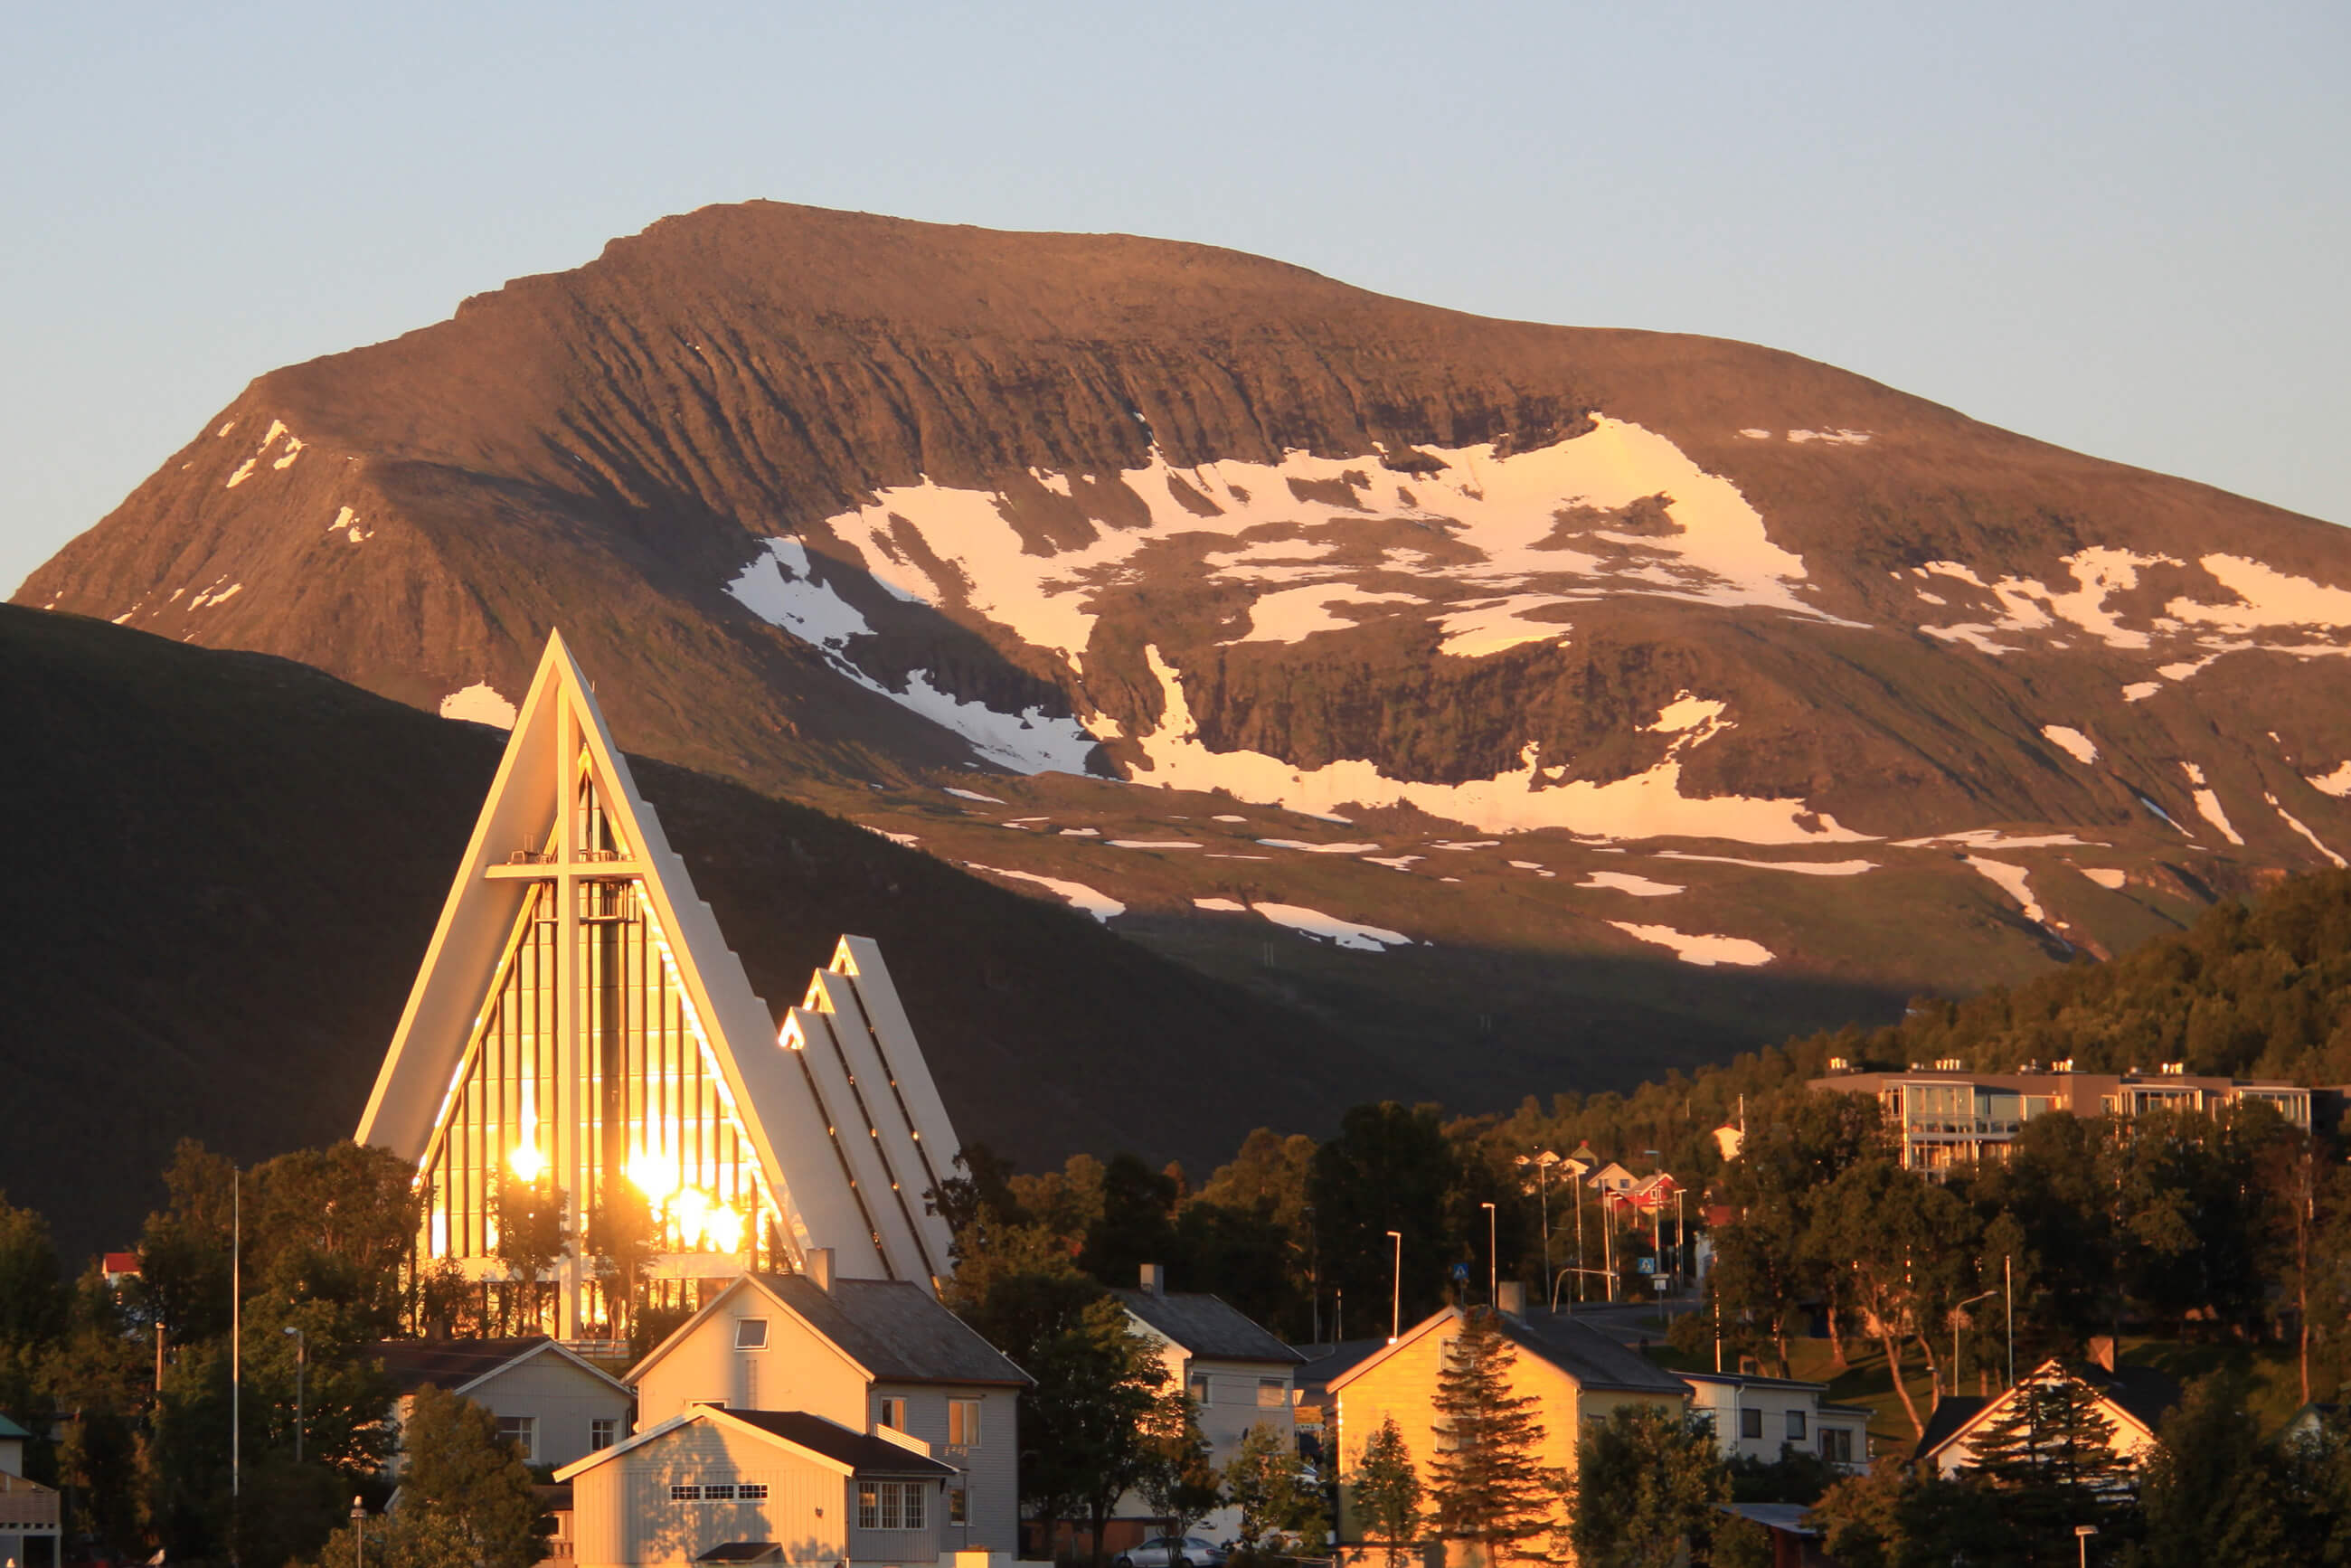 https://bubo.sk/uploads/galleries/5044/the-artic-catedral-tromso-norway-hgr-111349--photo_photo_competition.jpg